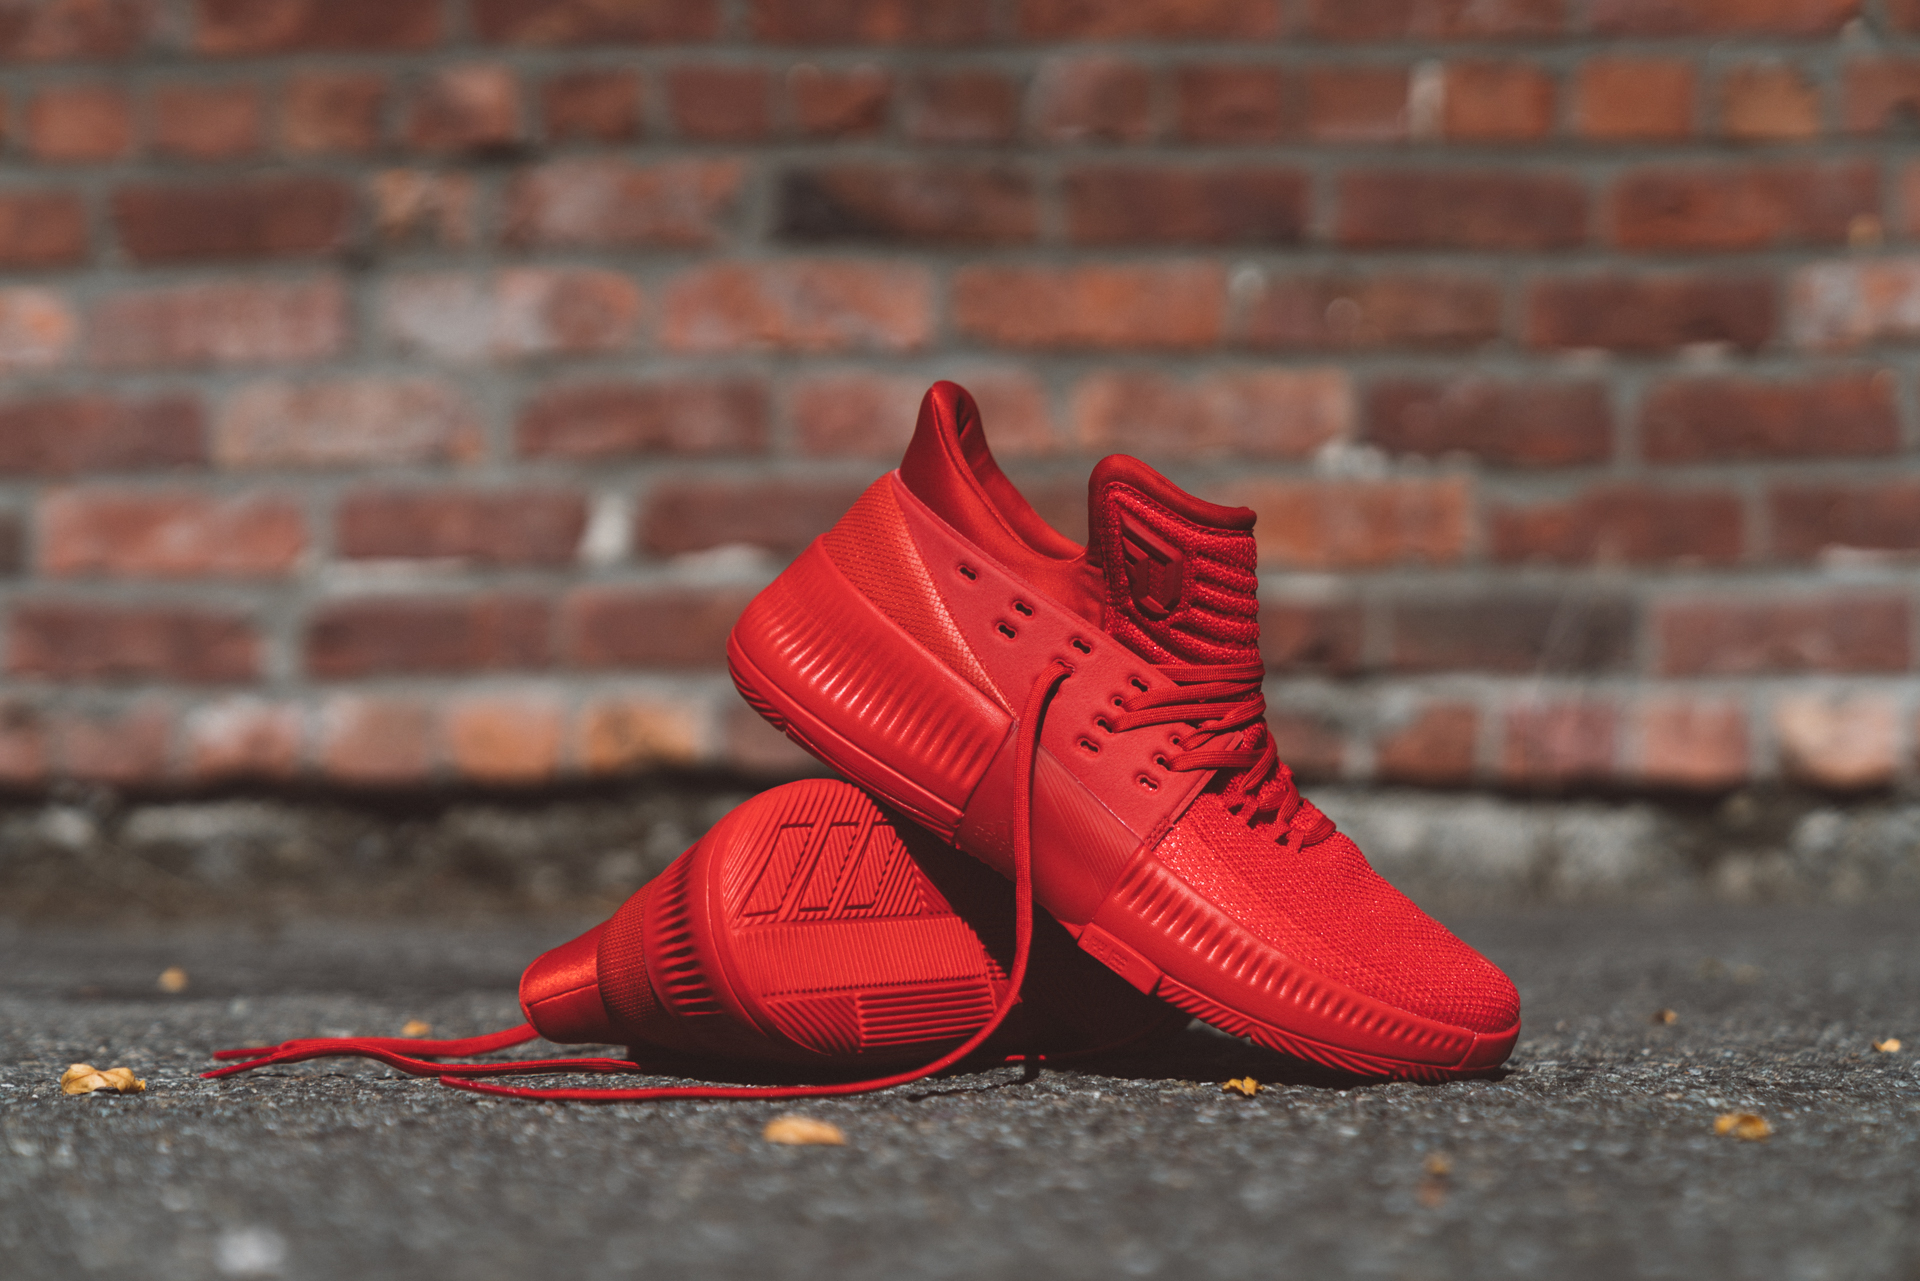 low priced 8386d b19c9 Adidas Dame 3 Roots Colorway Is Inspired By Bricks  Sole Col